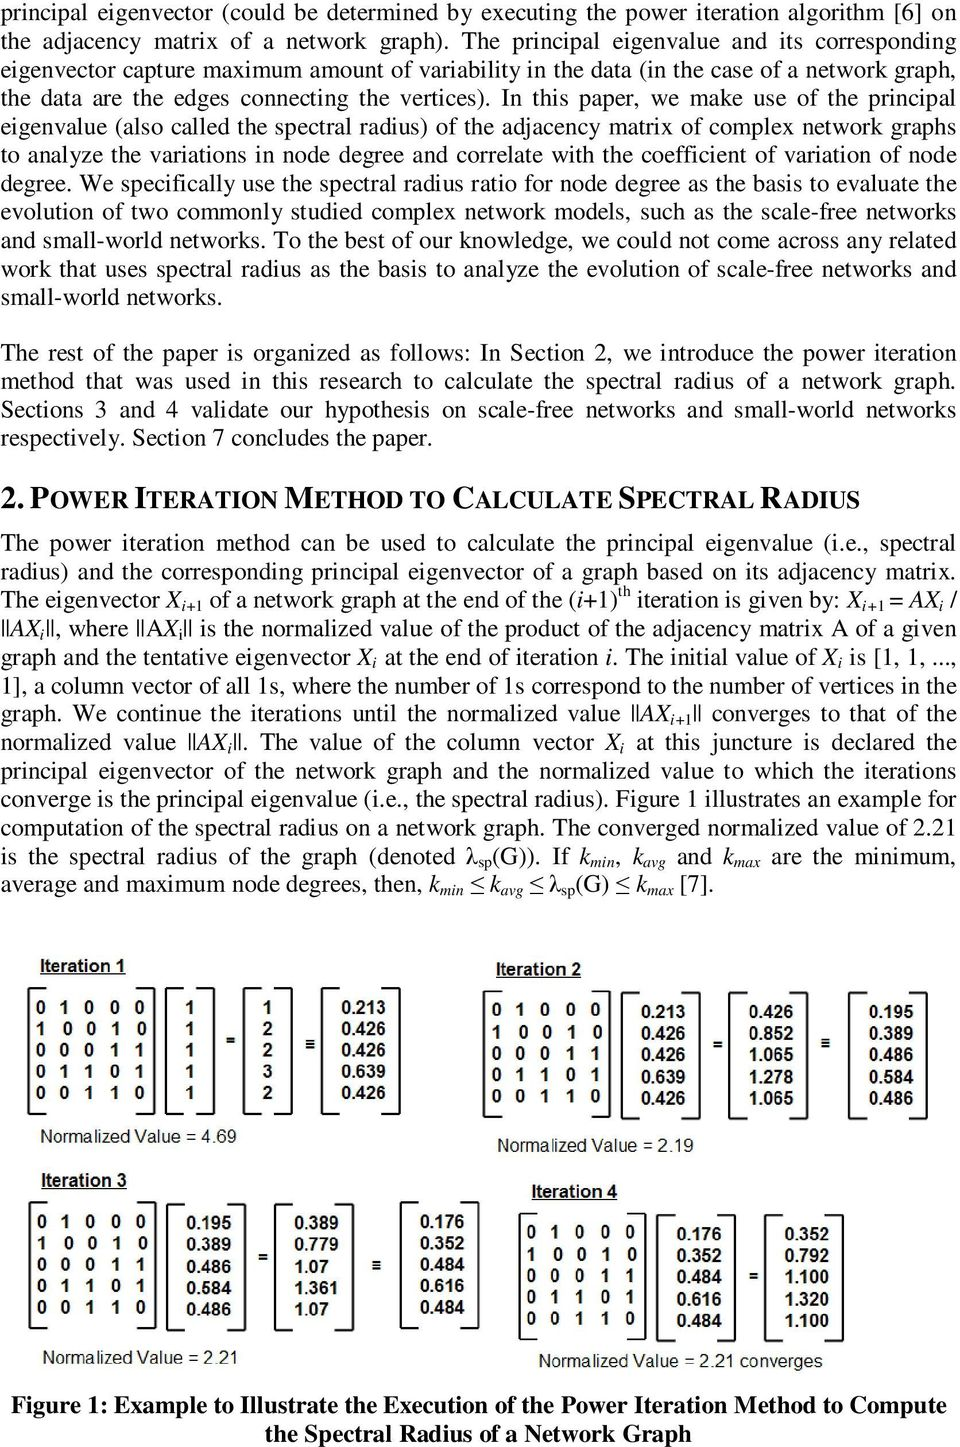 In this paper, we make use of the principal eigenvalue (also called the spectral radius) of the adjacency matrix of complex network graphs to analyze the variations in node degree and correlate with